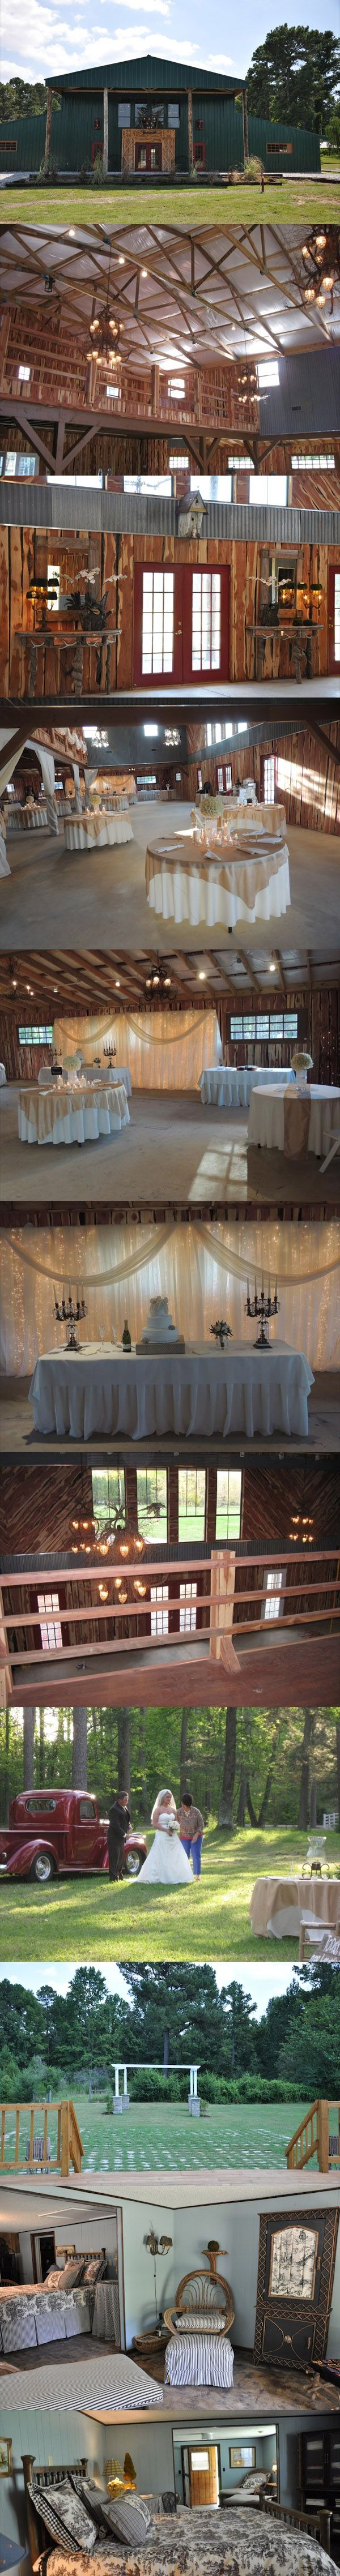 The Pasture at Willows Ranch, one of McCurtain County's wonderful wedding venues. 1810 Rhoden Rd Broken Bow, OK 74728   Phone: (580) 420-3725 #wedding #rustic #Oklahoma